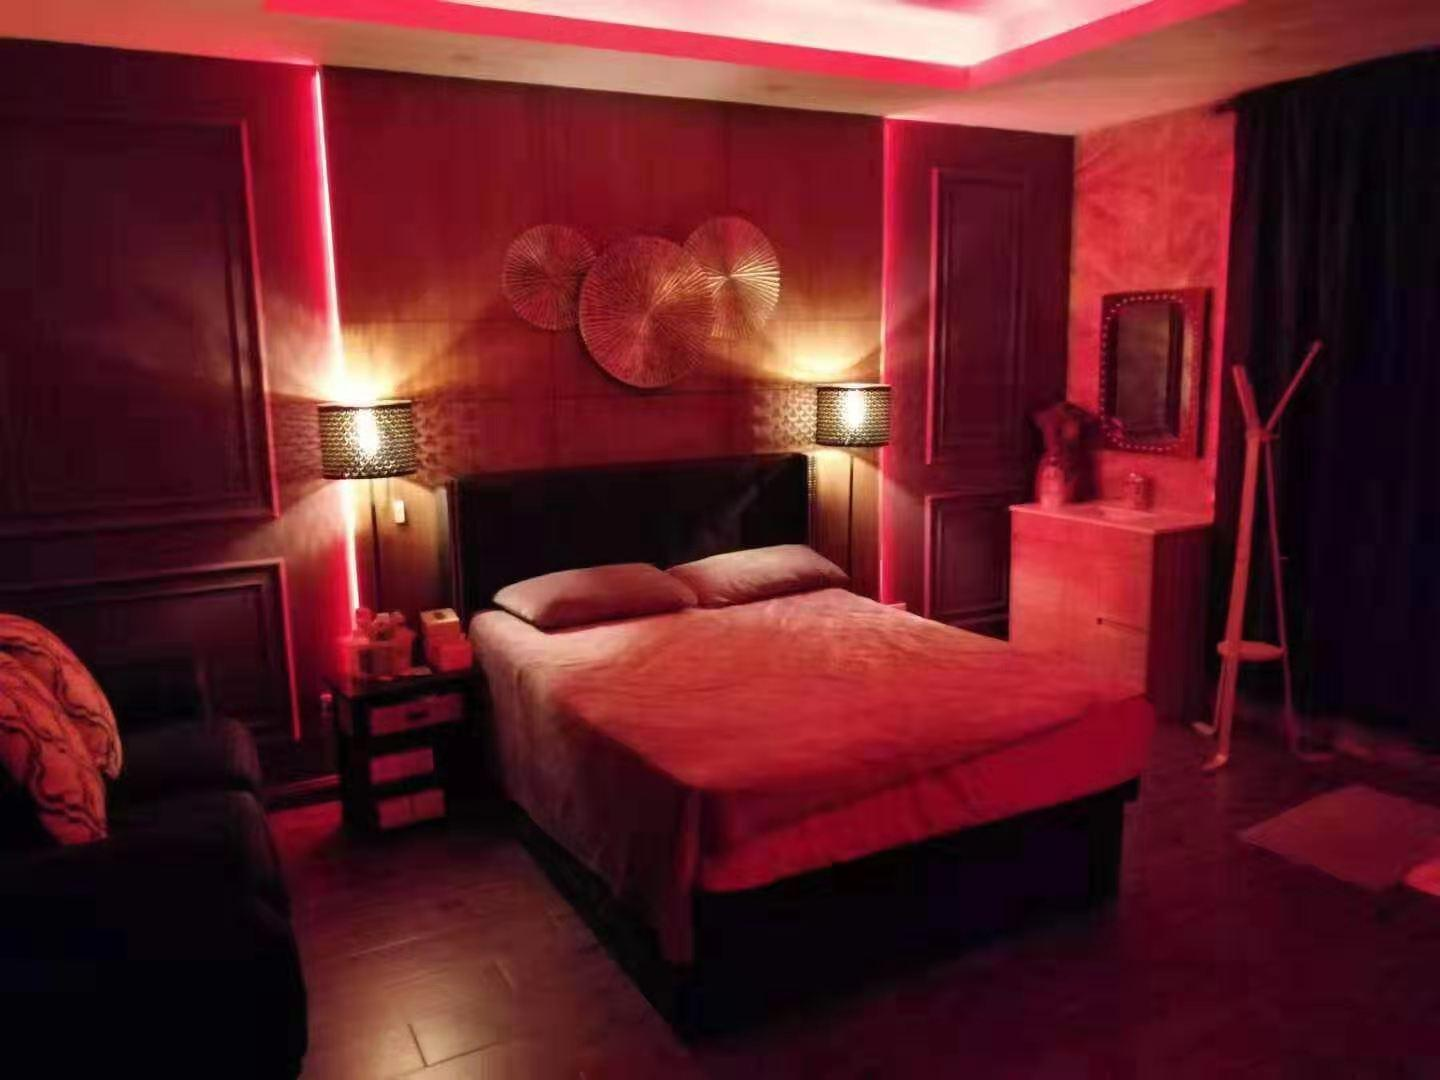 red-lantern-style-room-rooms/November2019/M918mvqx3fIkPSvTdJ7d.jpg